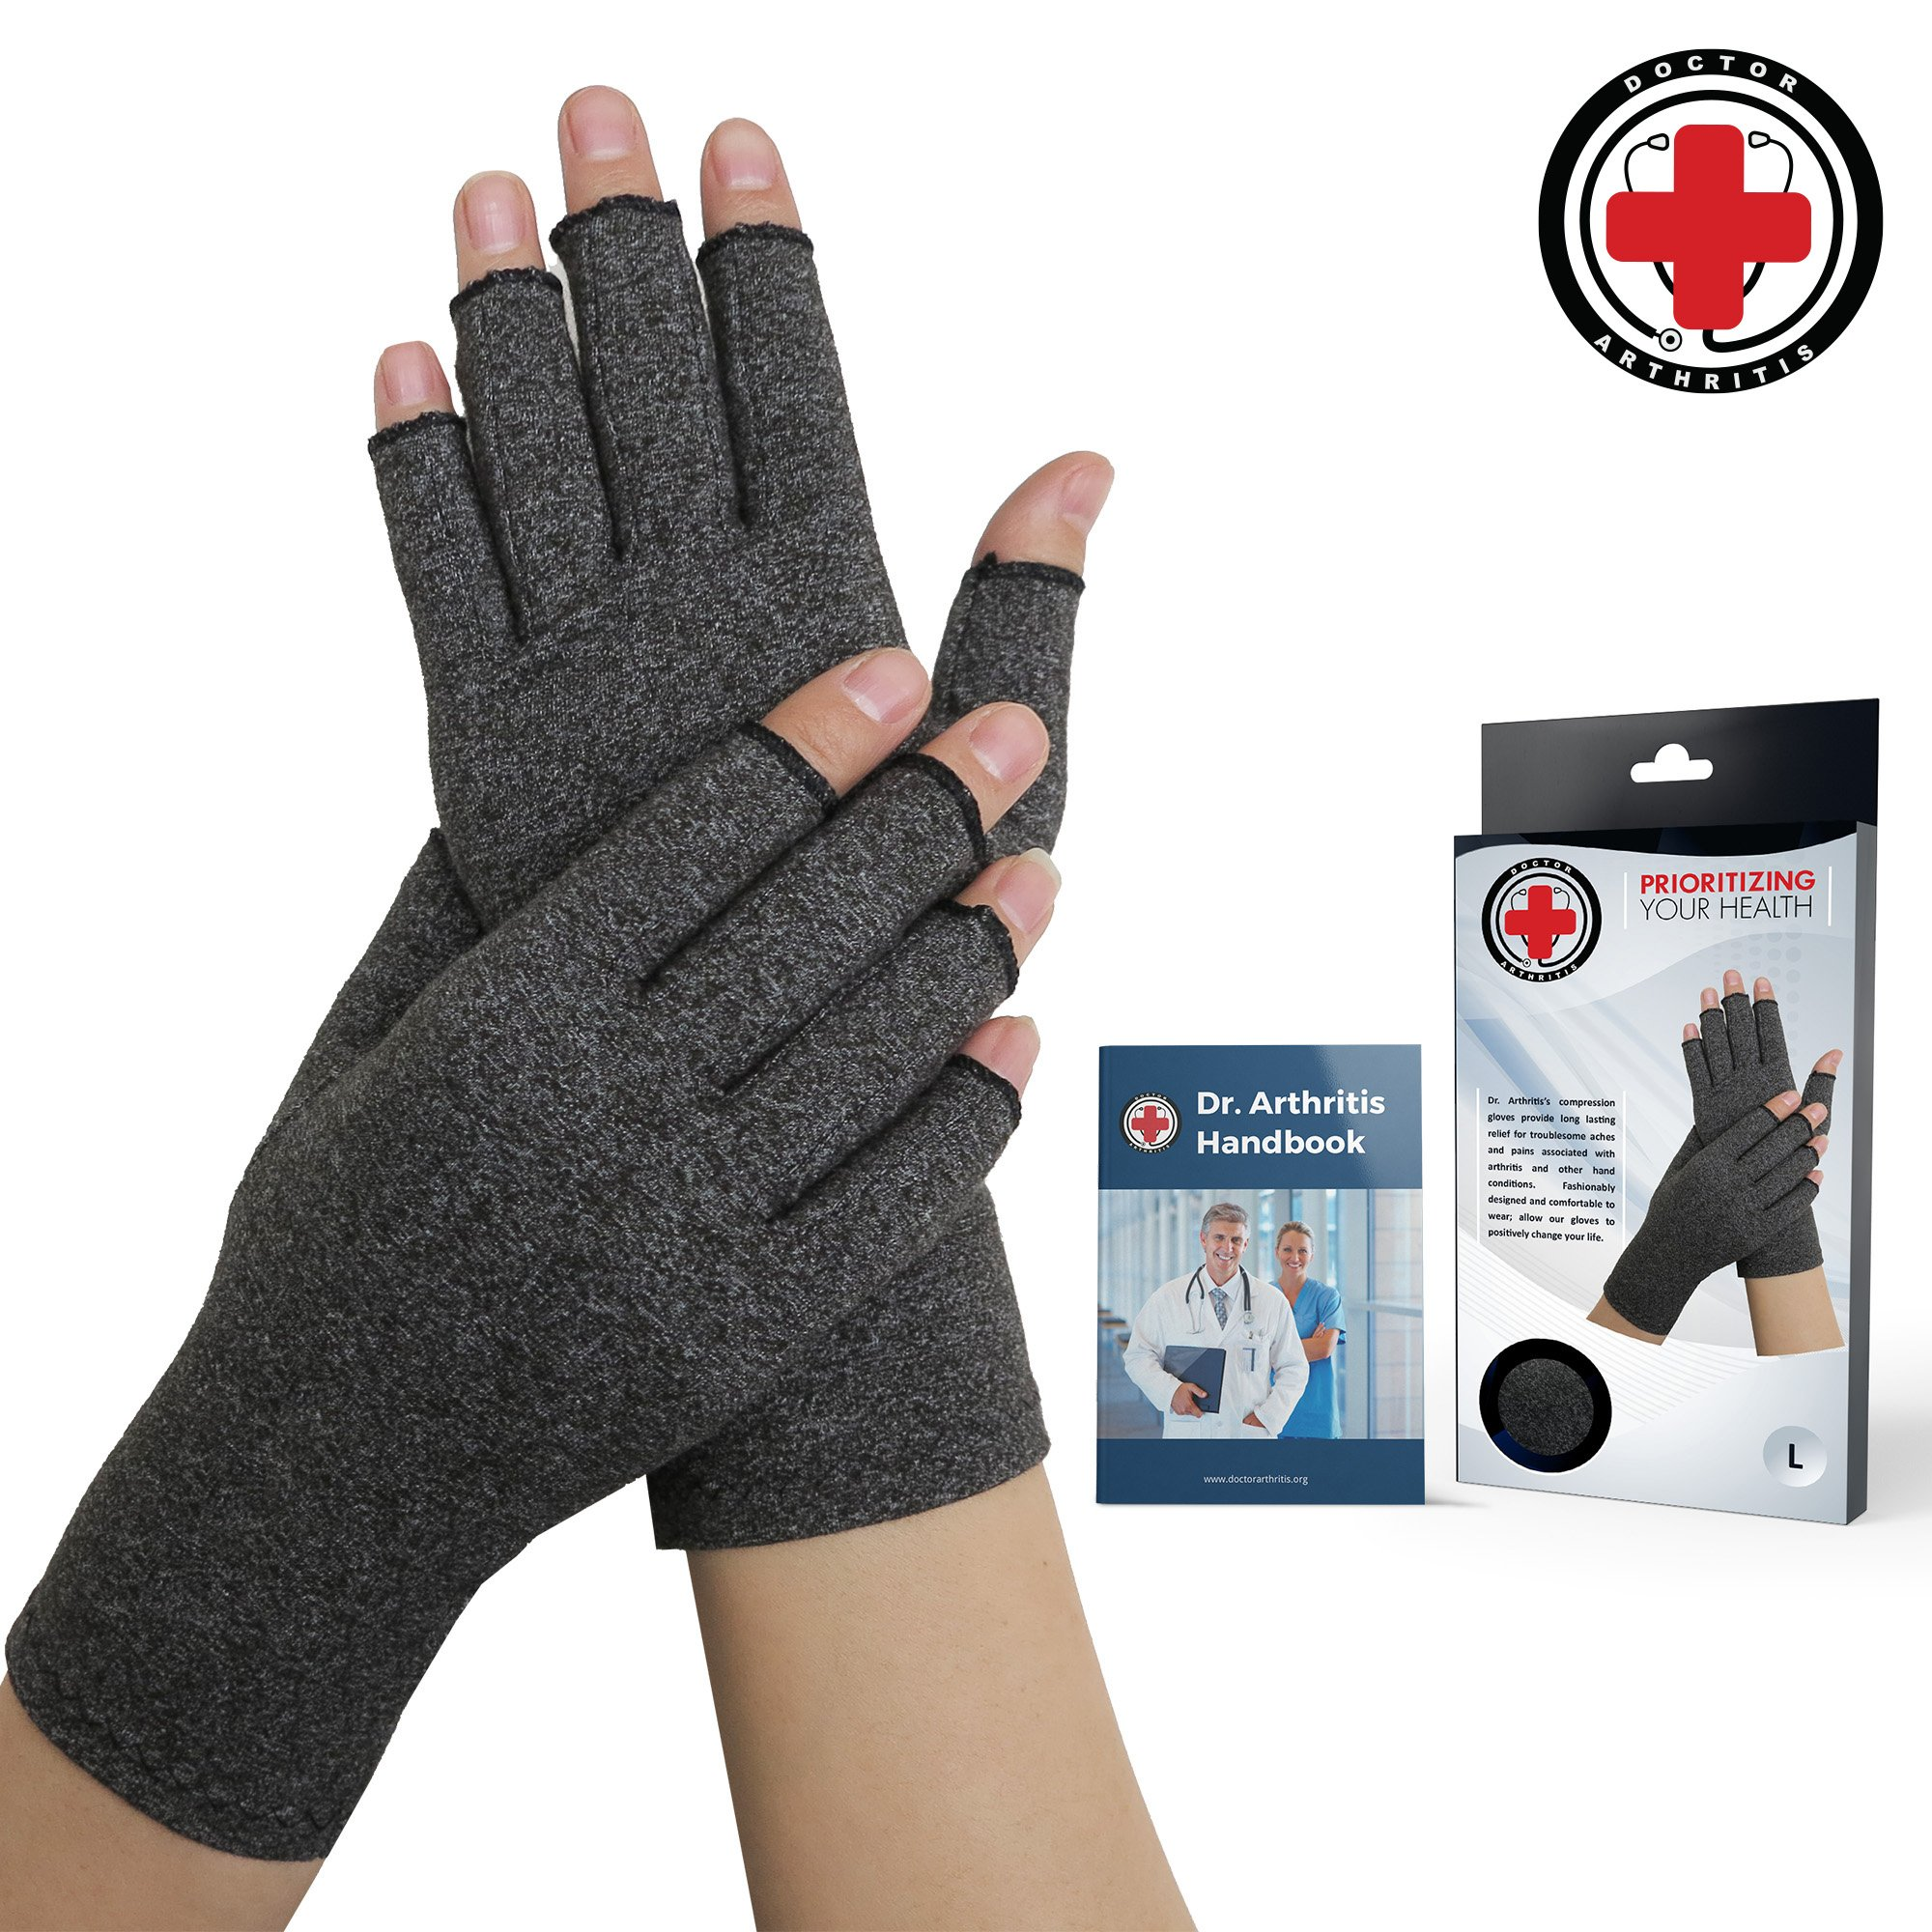 Doctor Developed Compression Arthritis Gloves - Doctor Written Handbook Included: Relieve Arthritis Symptoms, Raynauds Disease & Carpal Tunnel (M) by Dr. Arthritis